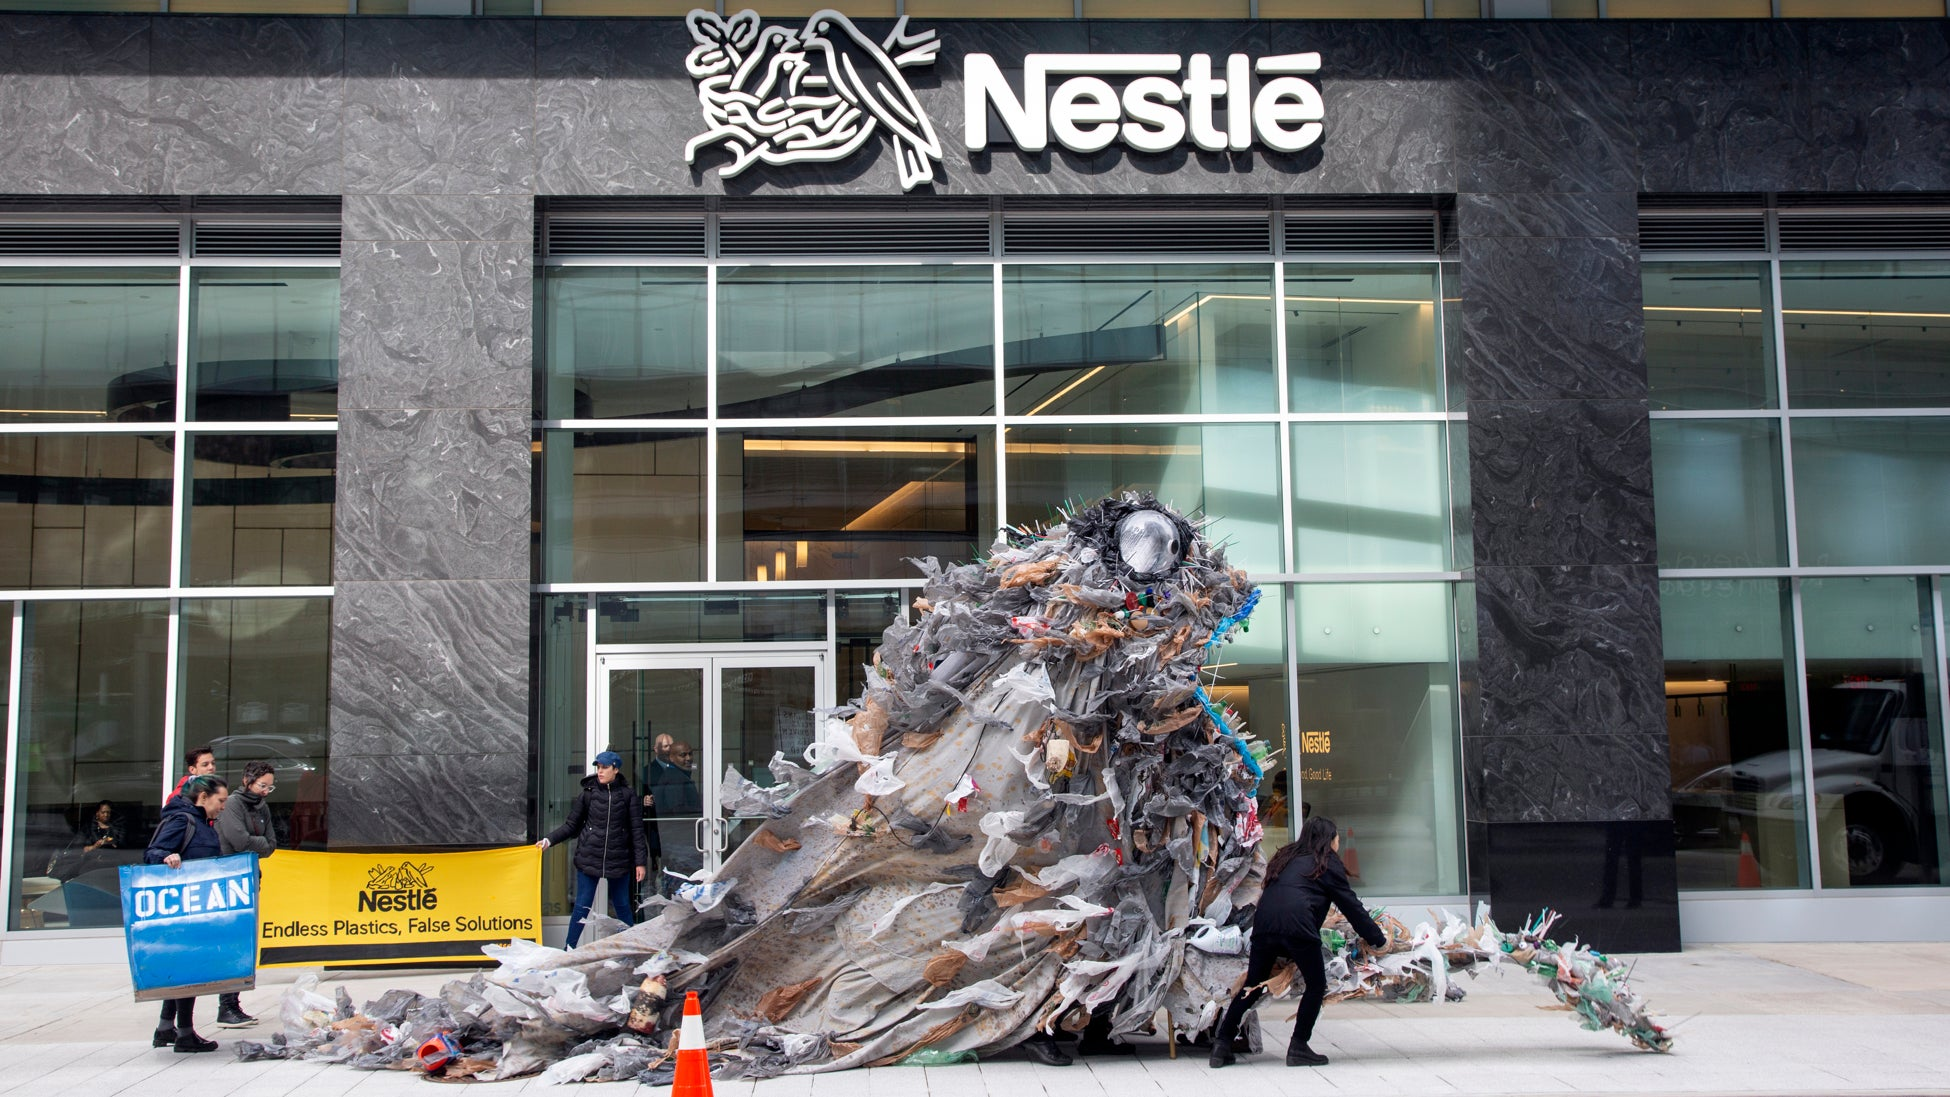 Activists Deliver Giant Trash Monsters To Nestlé Headquarters To Protest Plastic Pollution